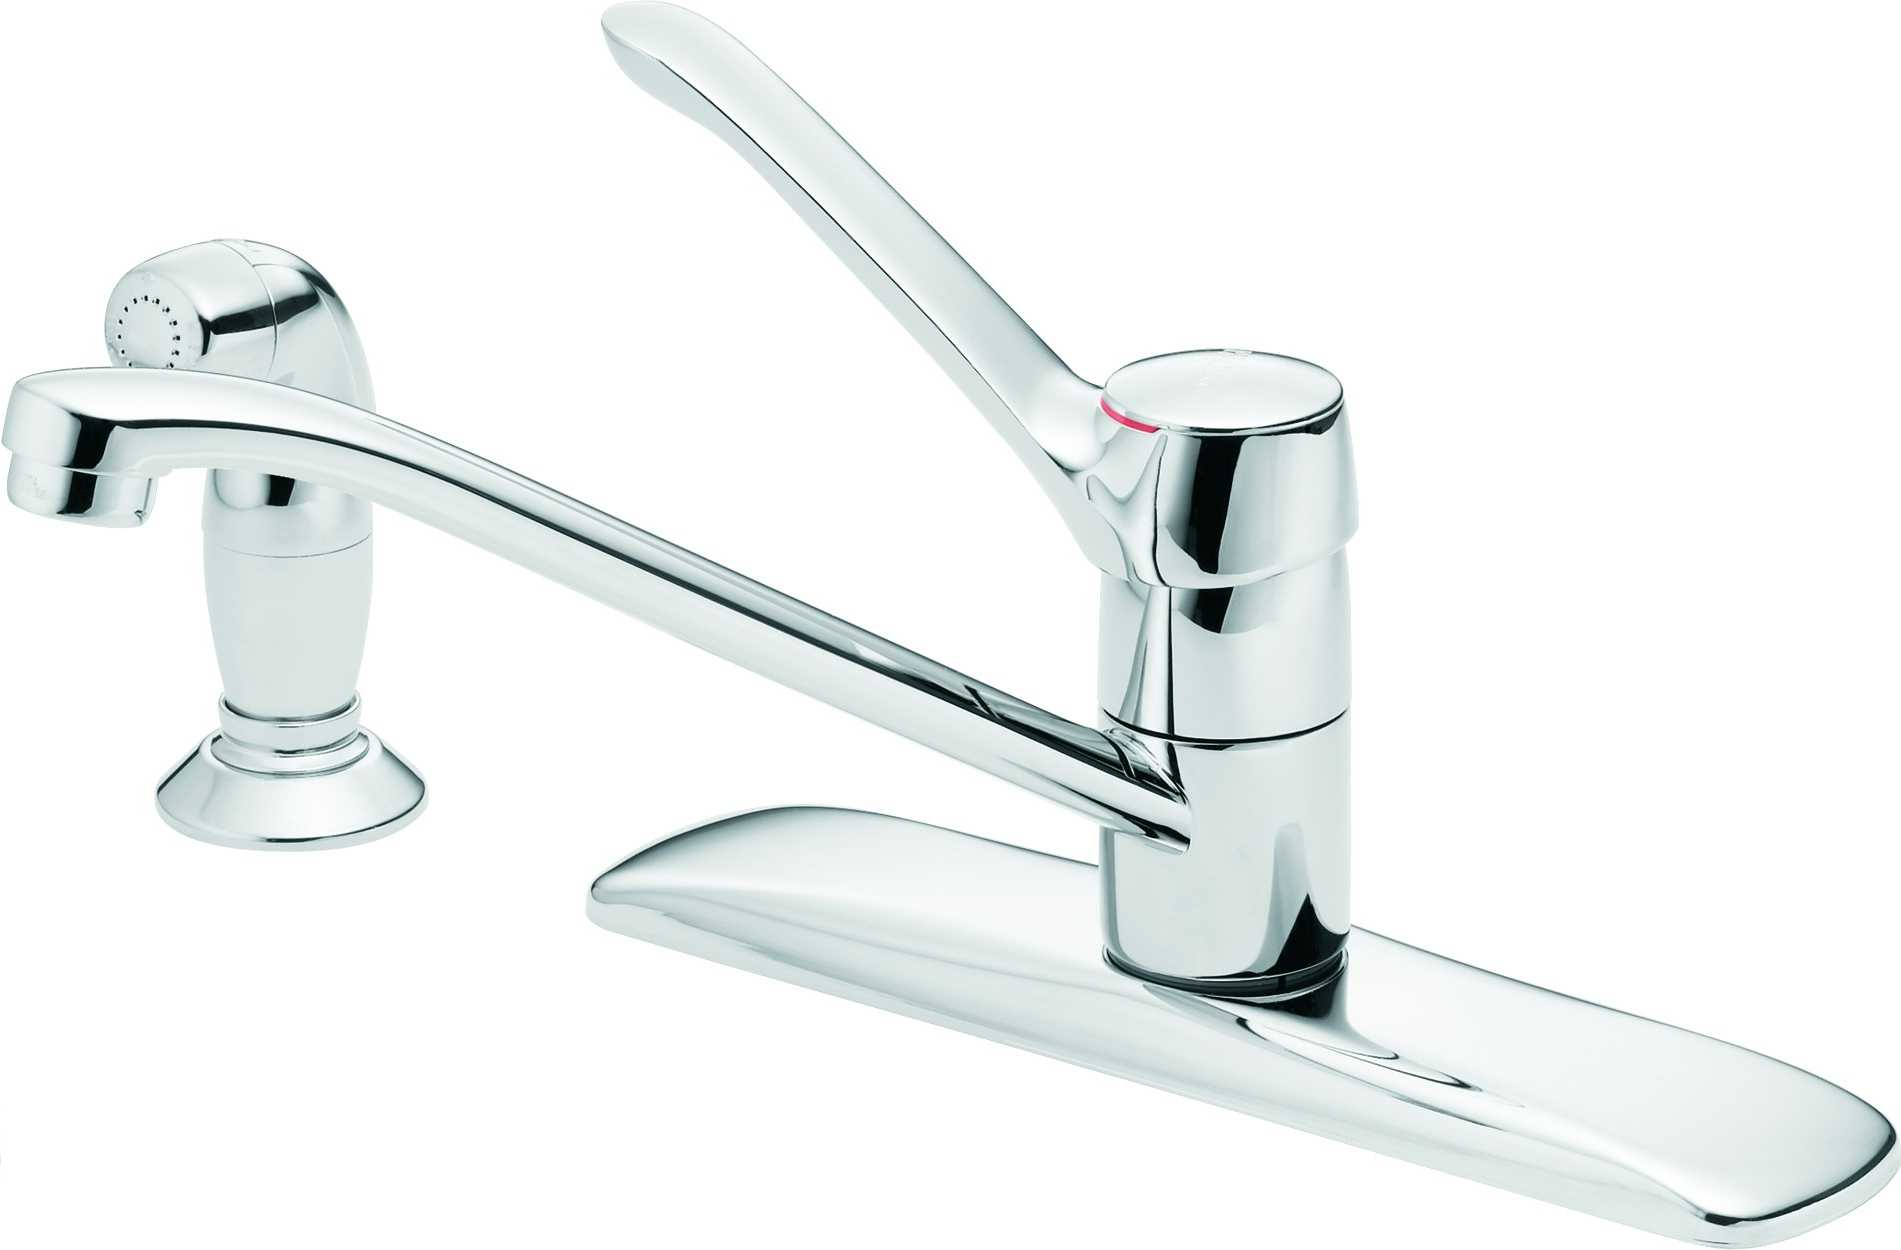 Silver Moen Kitchen Faucets (View 7 of 10)